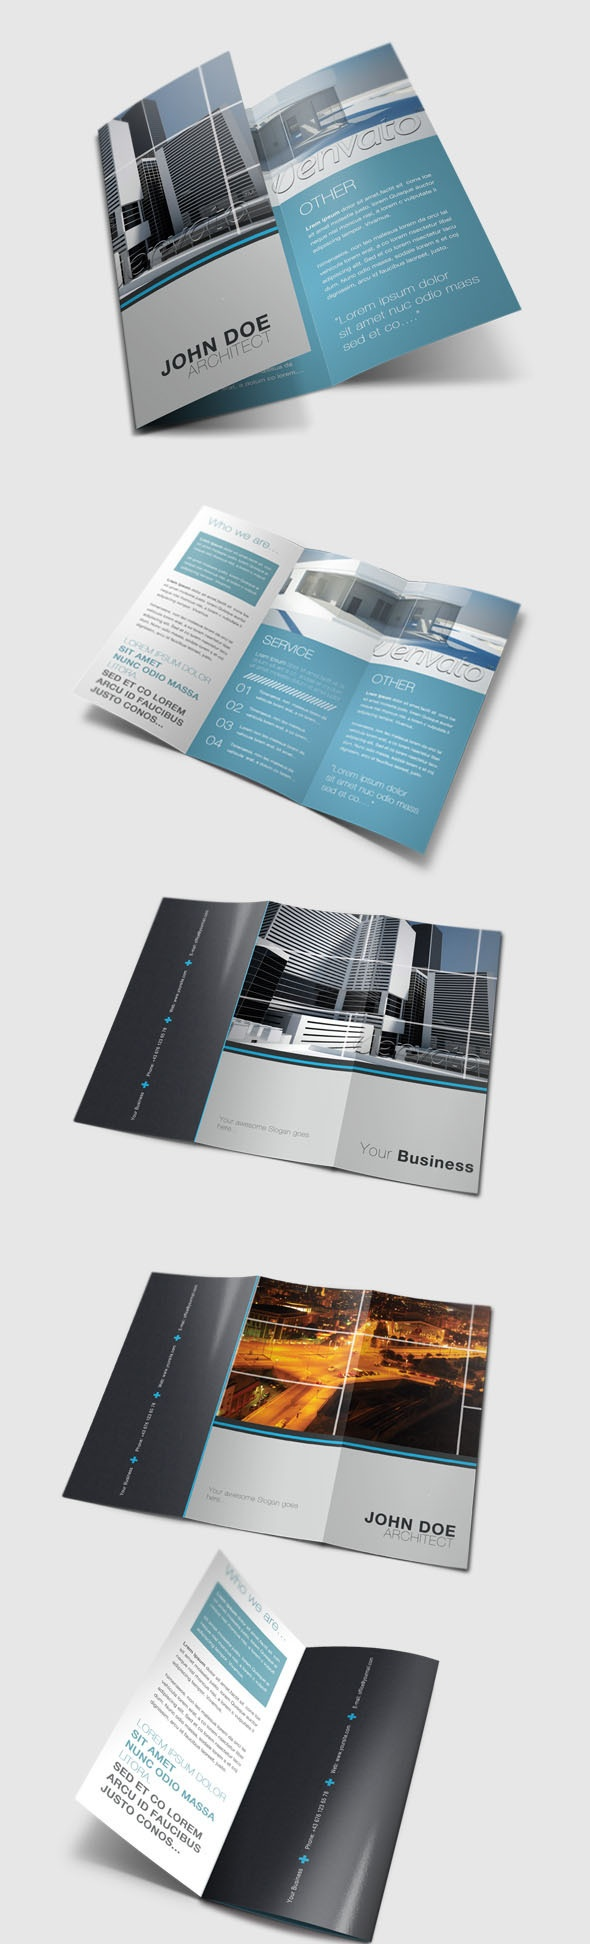 Tri Fold Brochure by Danijel Mokic, via Behance